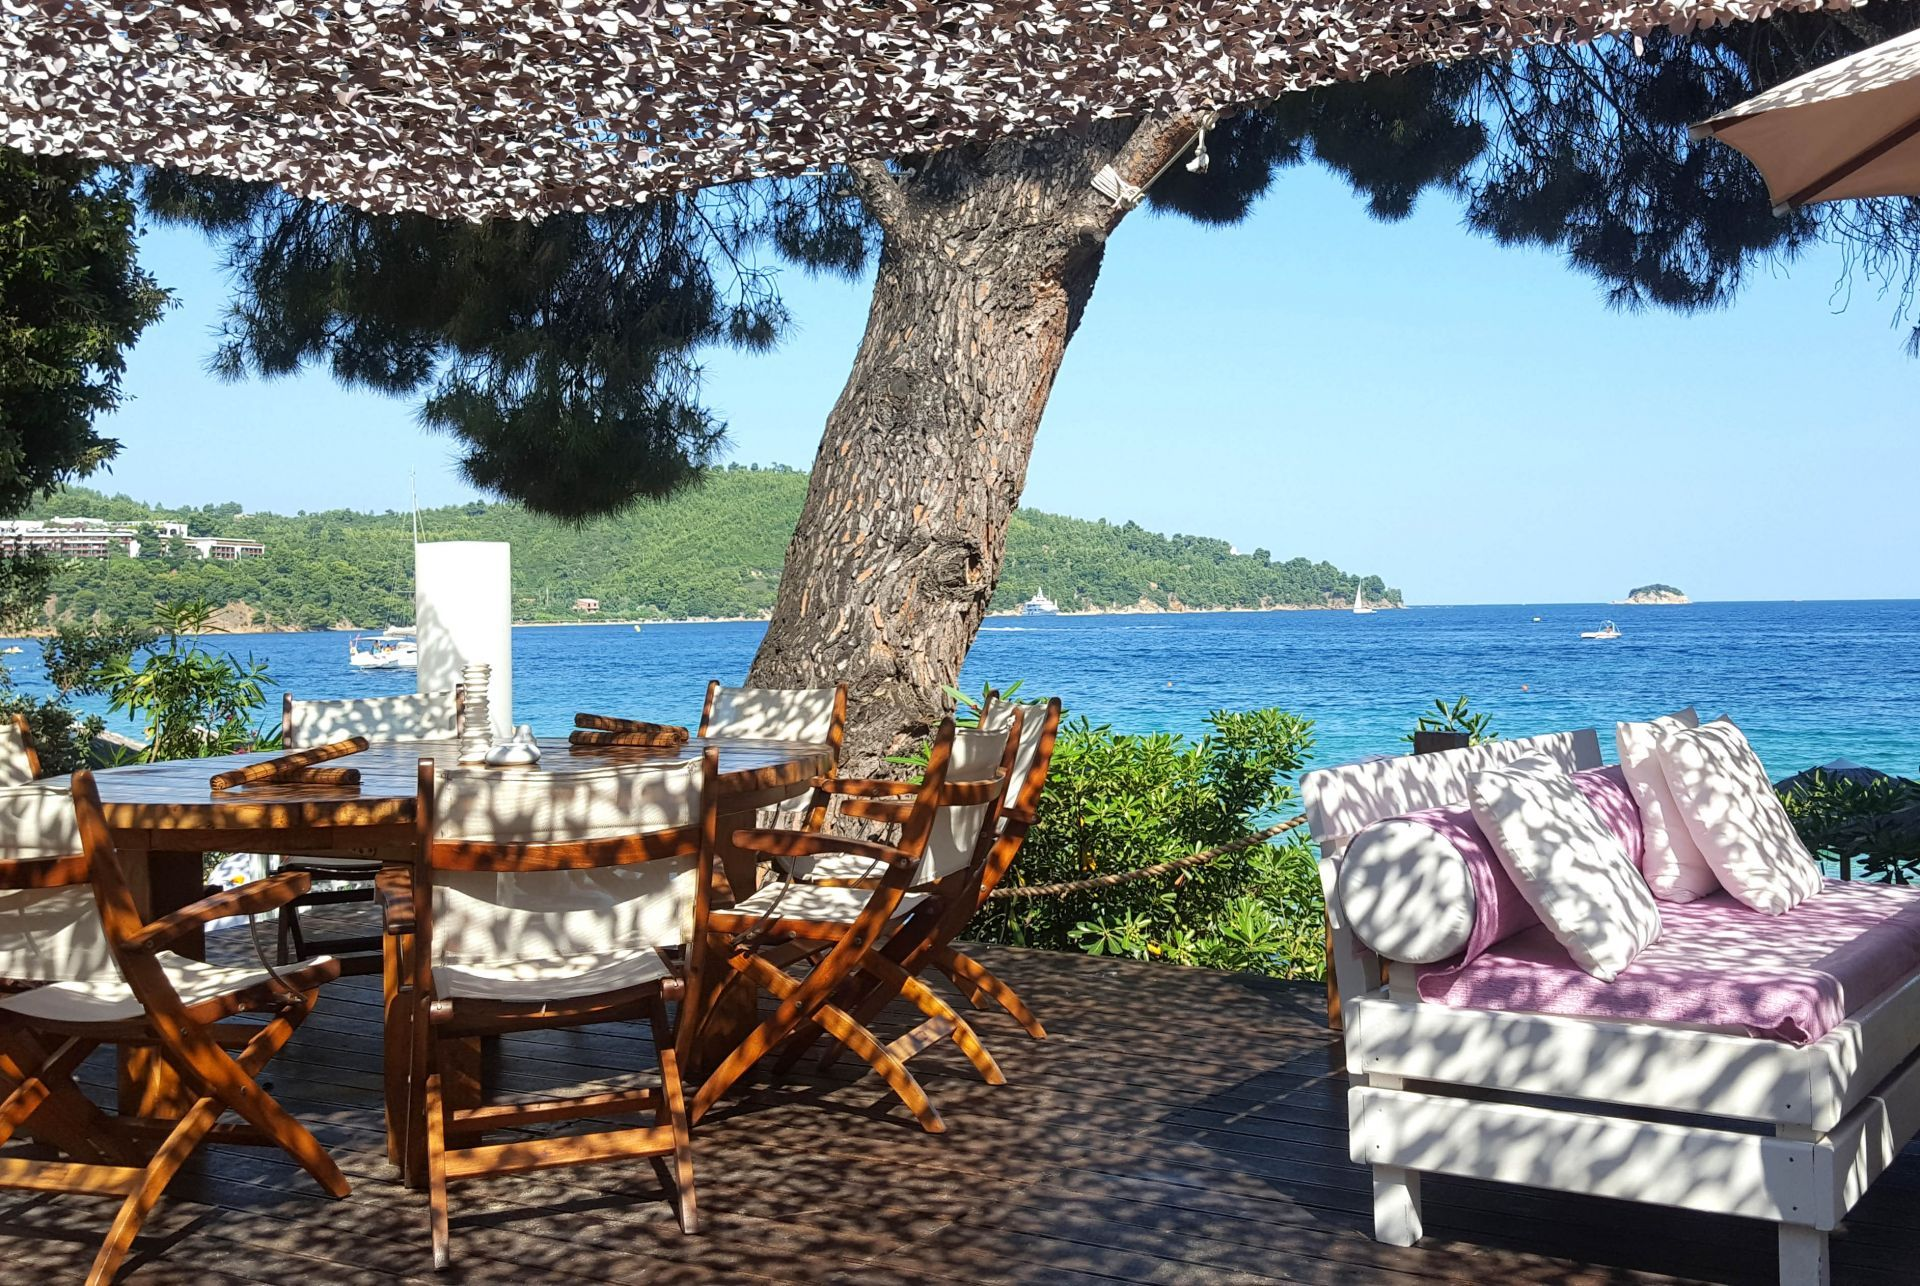 Places to eat and drink in Skiathos